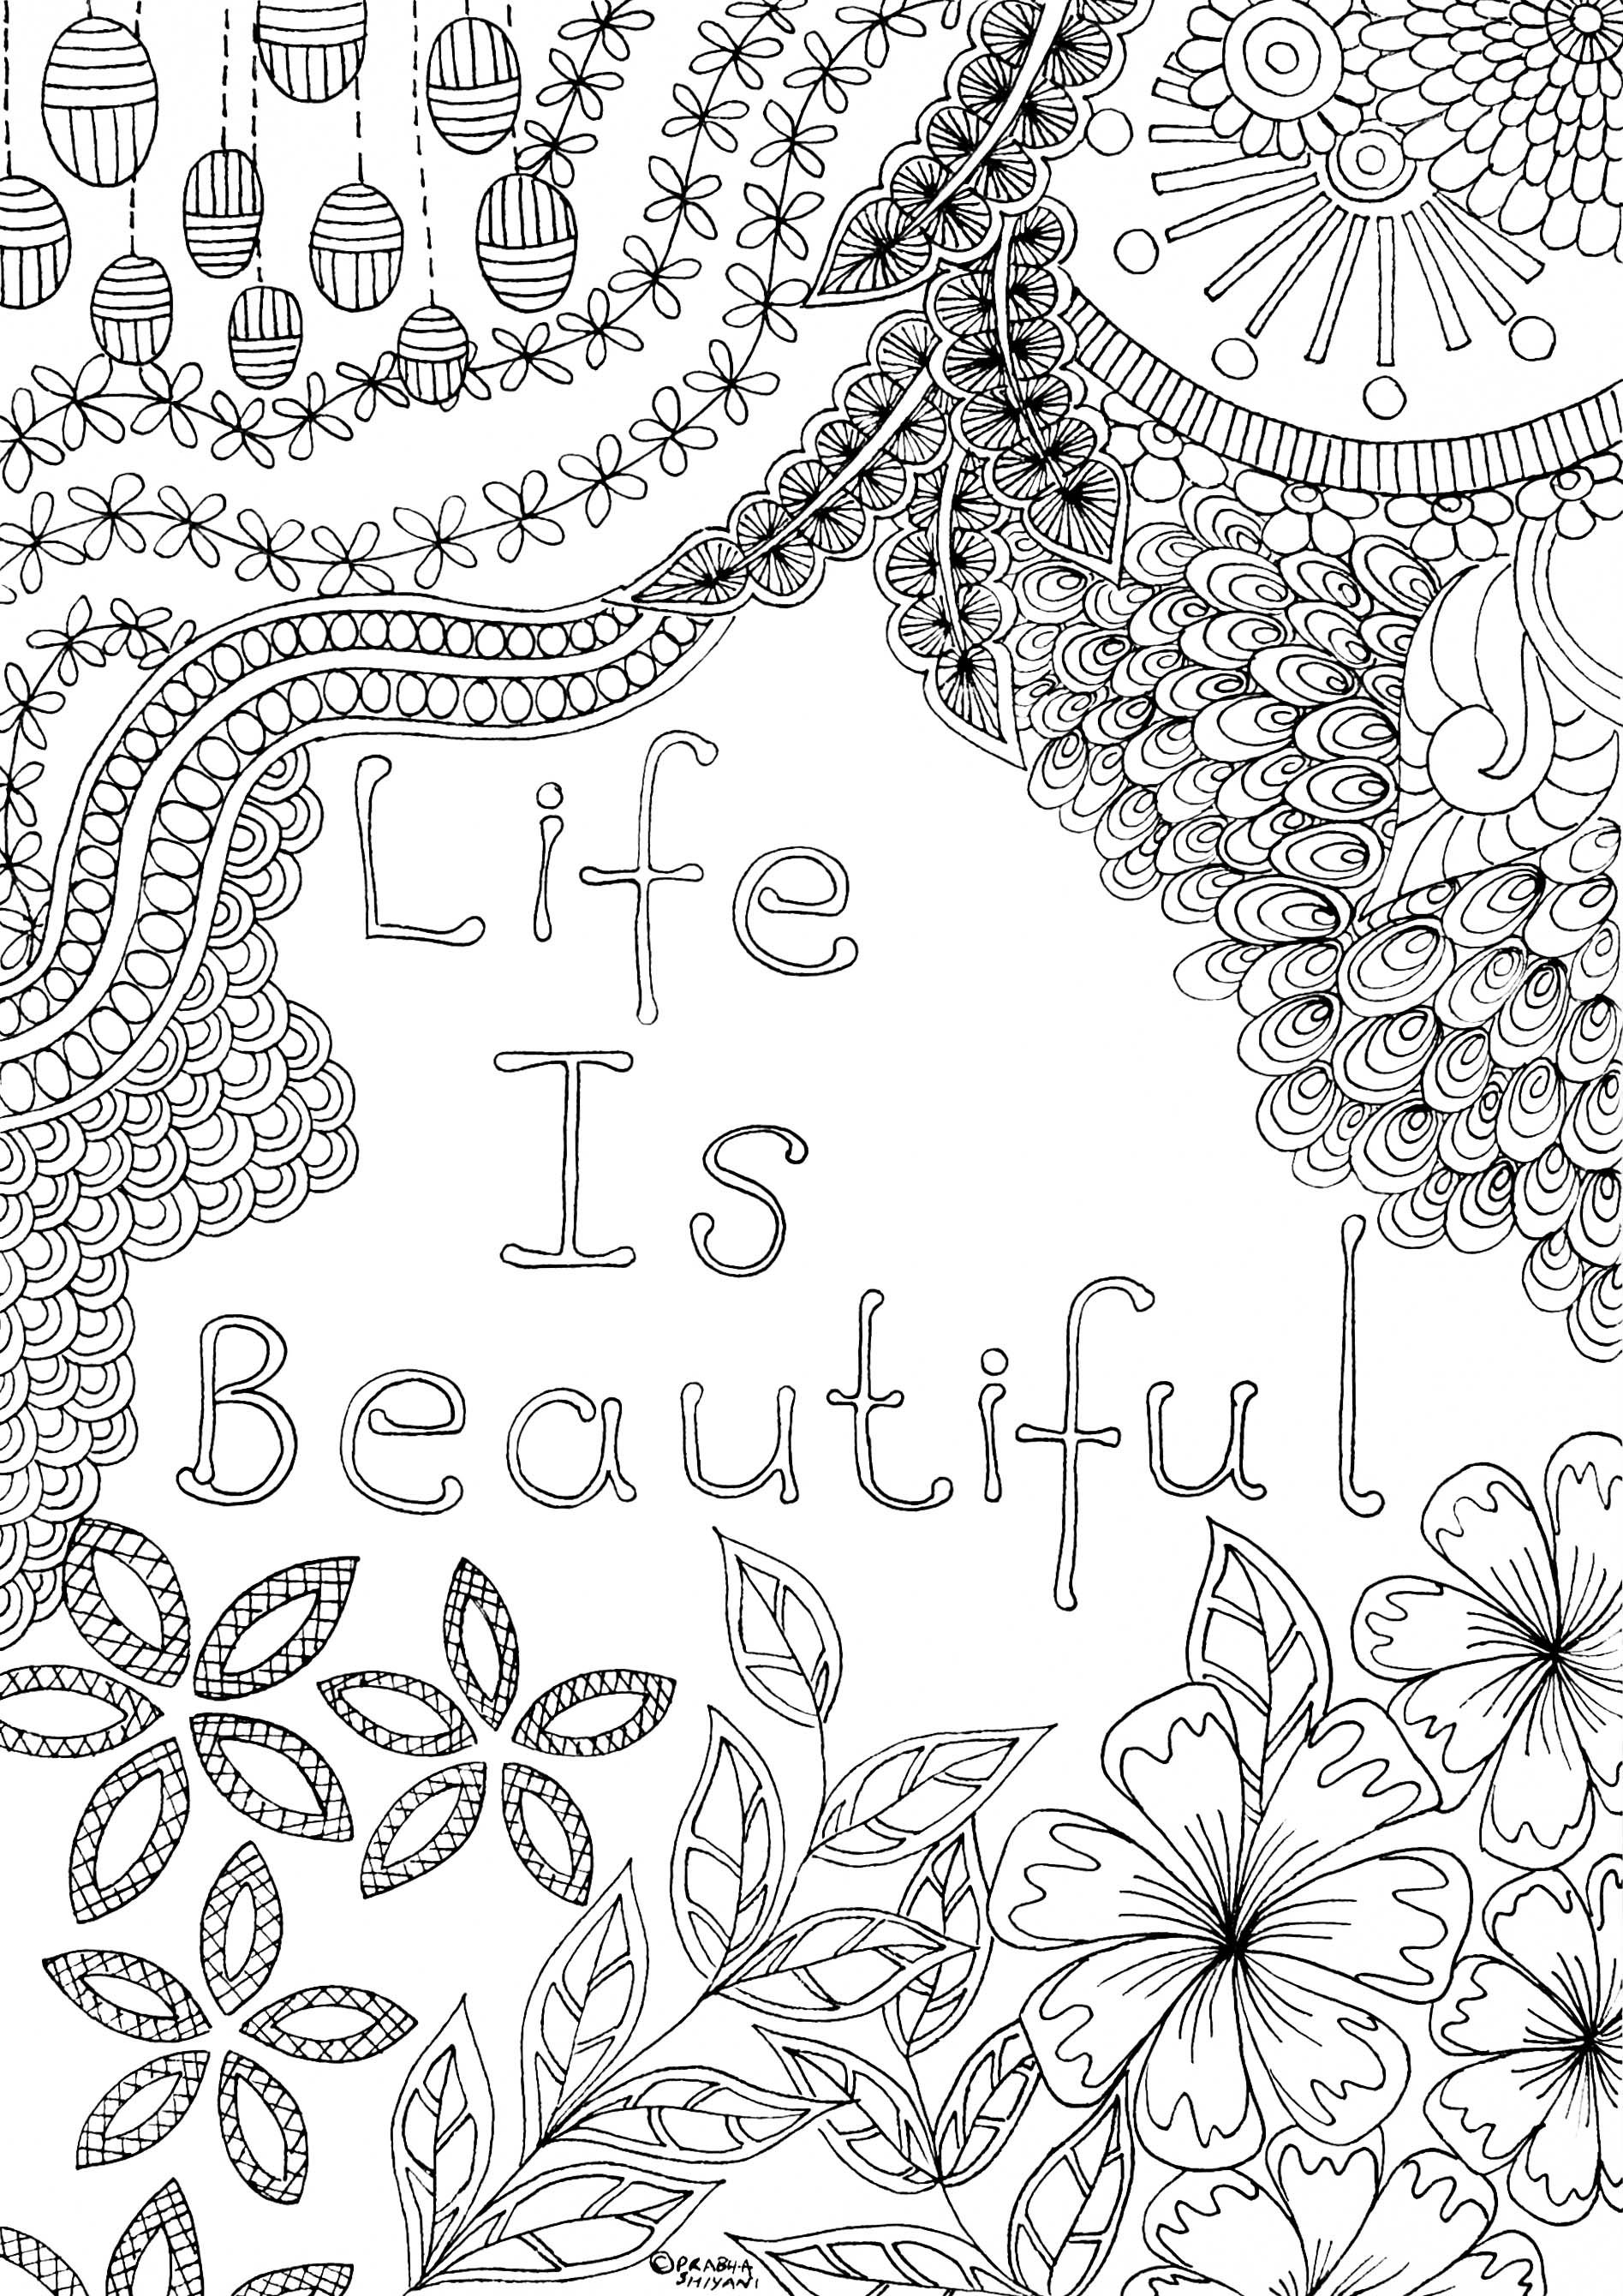 Mindful Affirmation Colouring Book | Coloring books ...